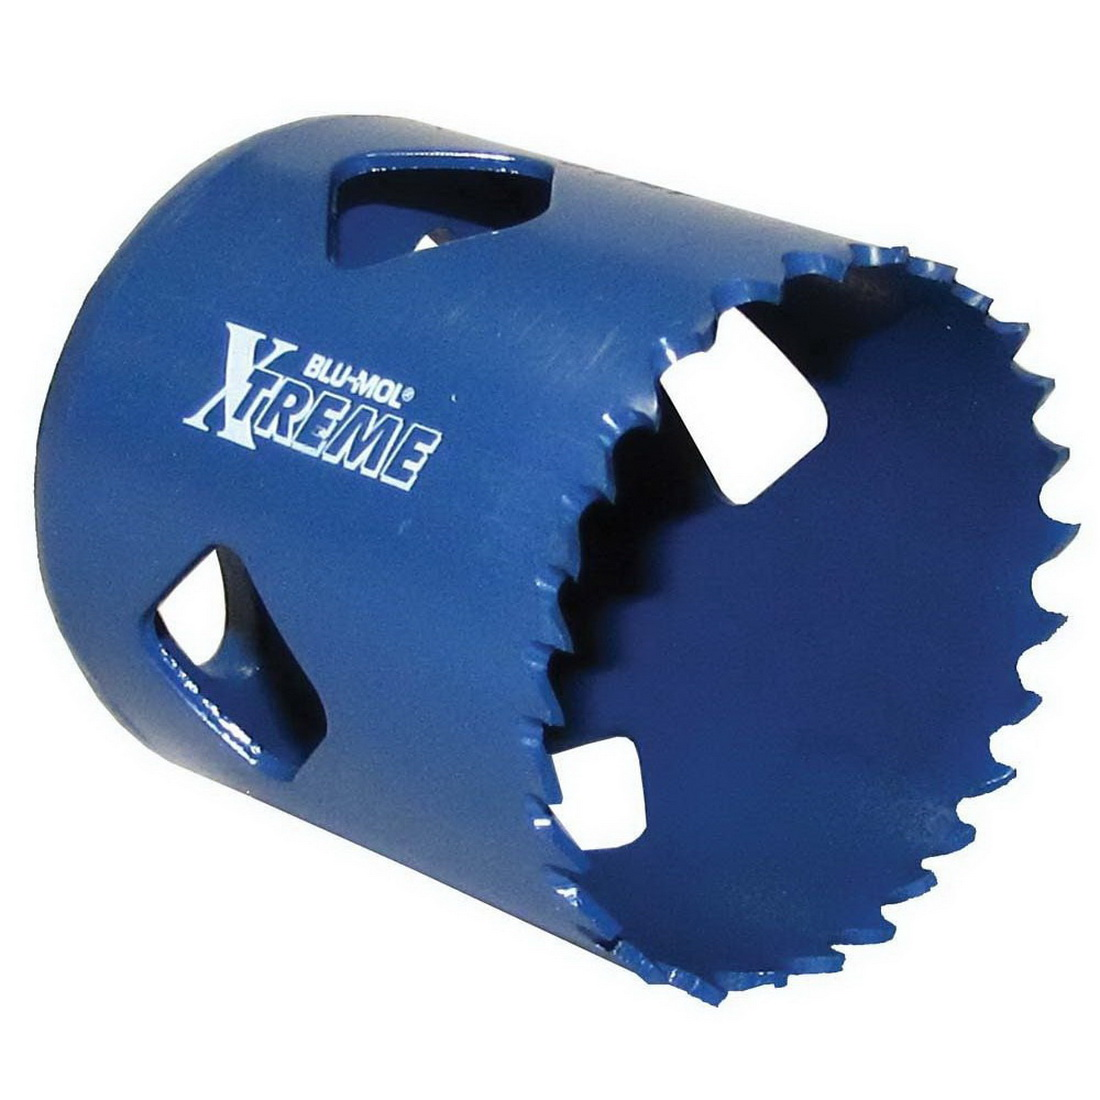 Xtreme 140mm 4/6 Tooth Bi-Metal Hole Saw Steel